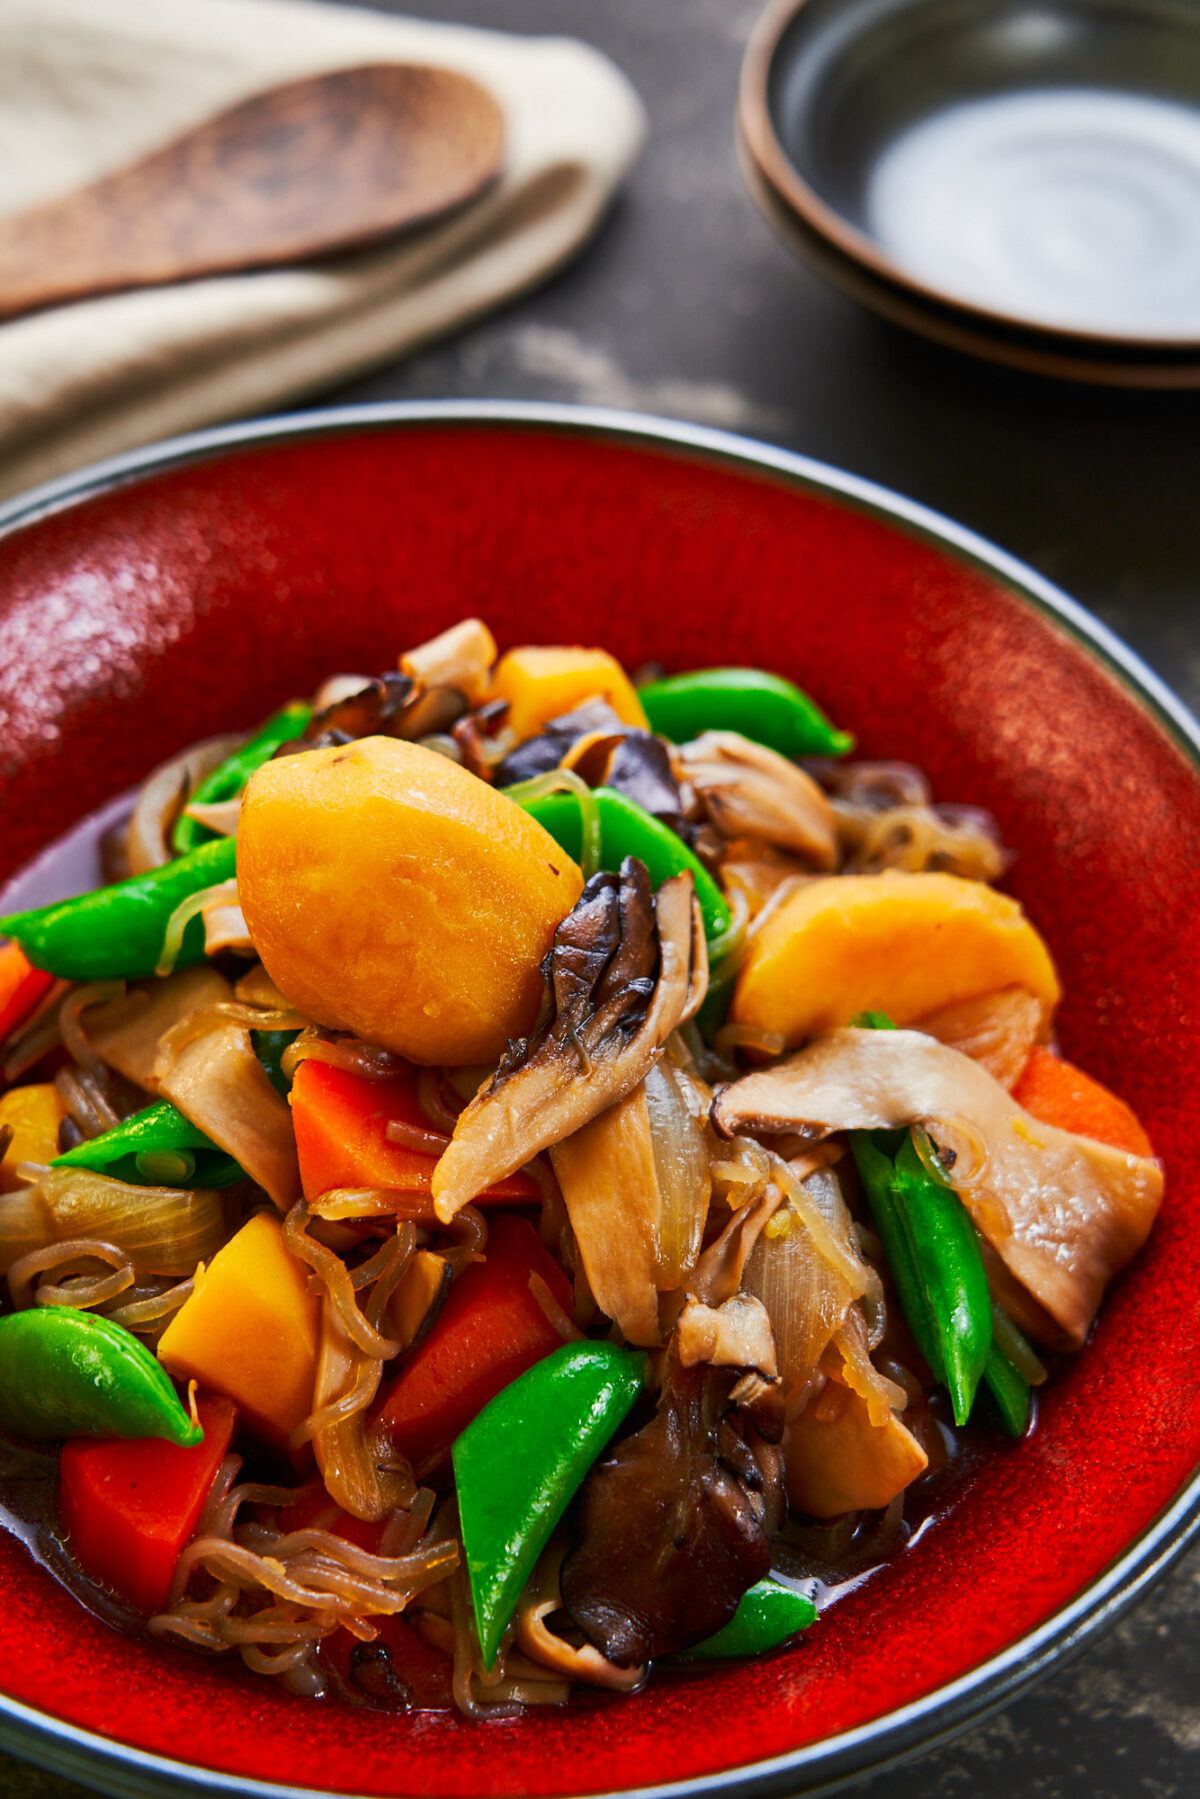 With big hearty chunks of potatoes and carrots cooked together with a meaty medley of mushrooms, you won't miss the meat in this vegan Nikujaga.